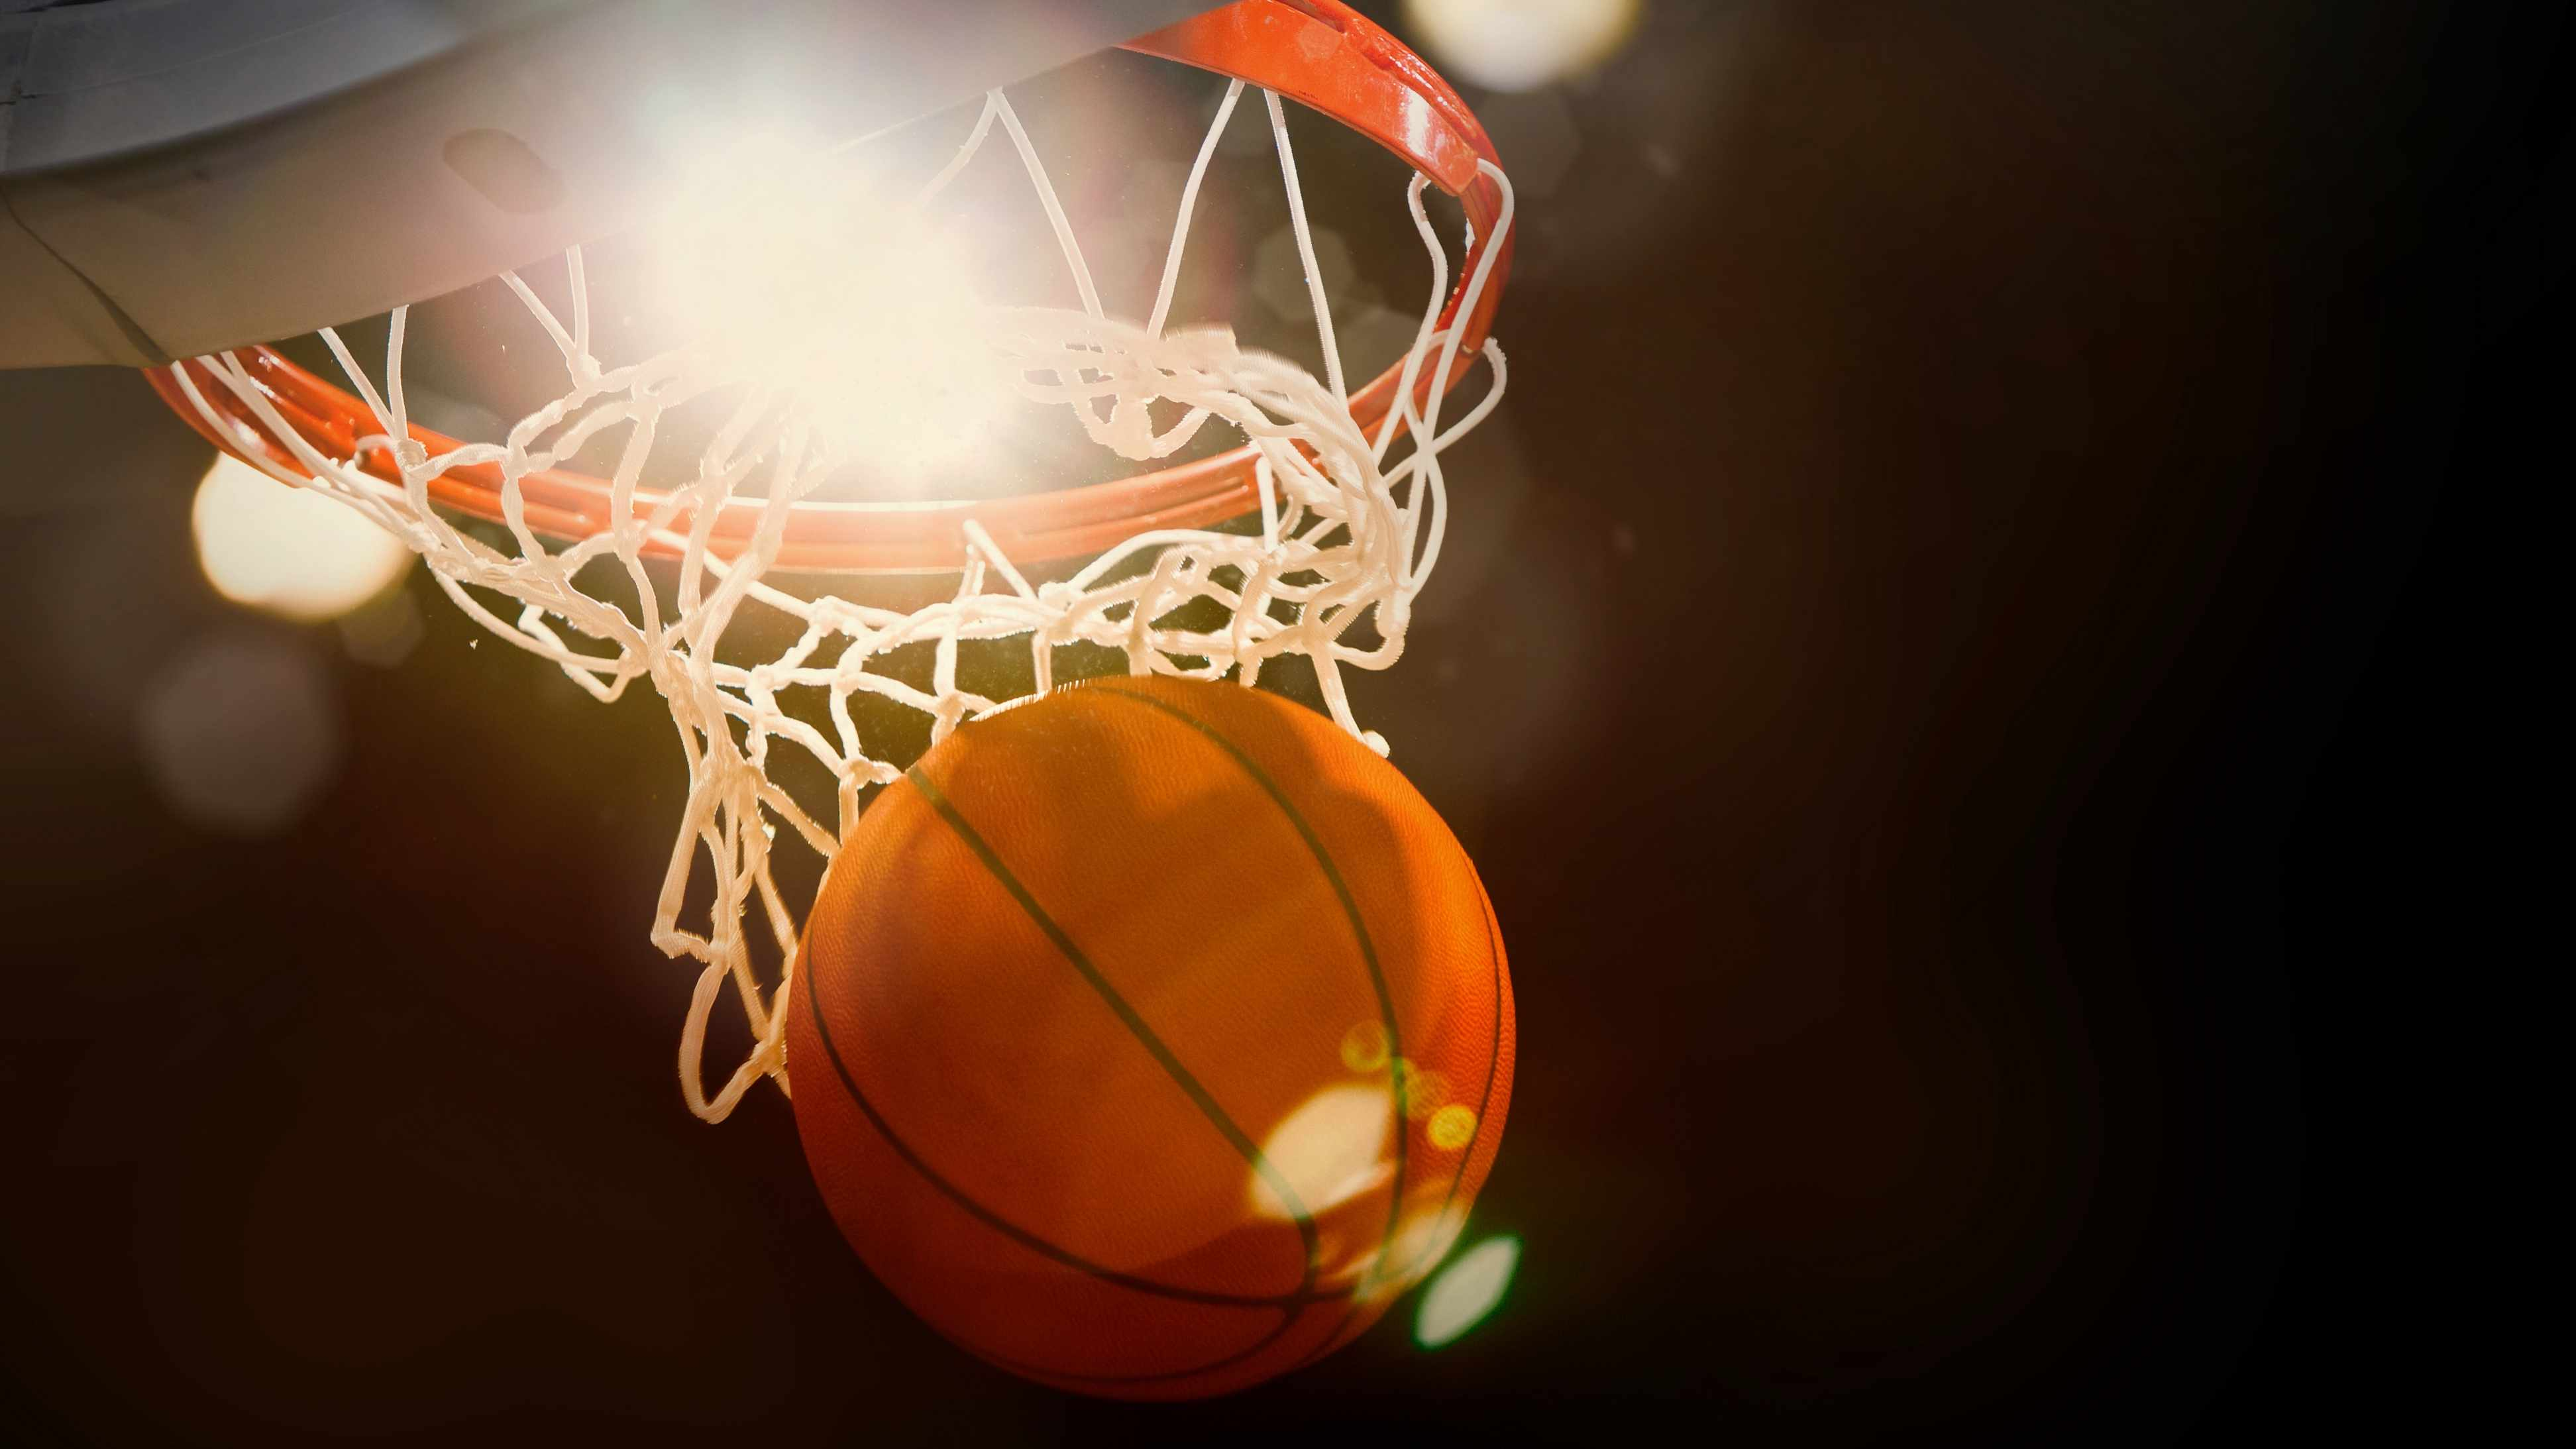 a basketball swooshing through a hoop with bright light in the background